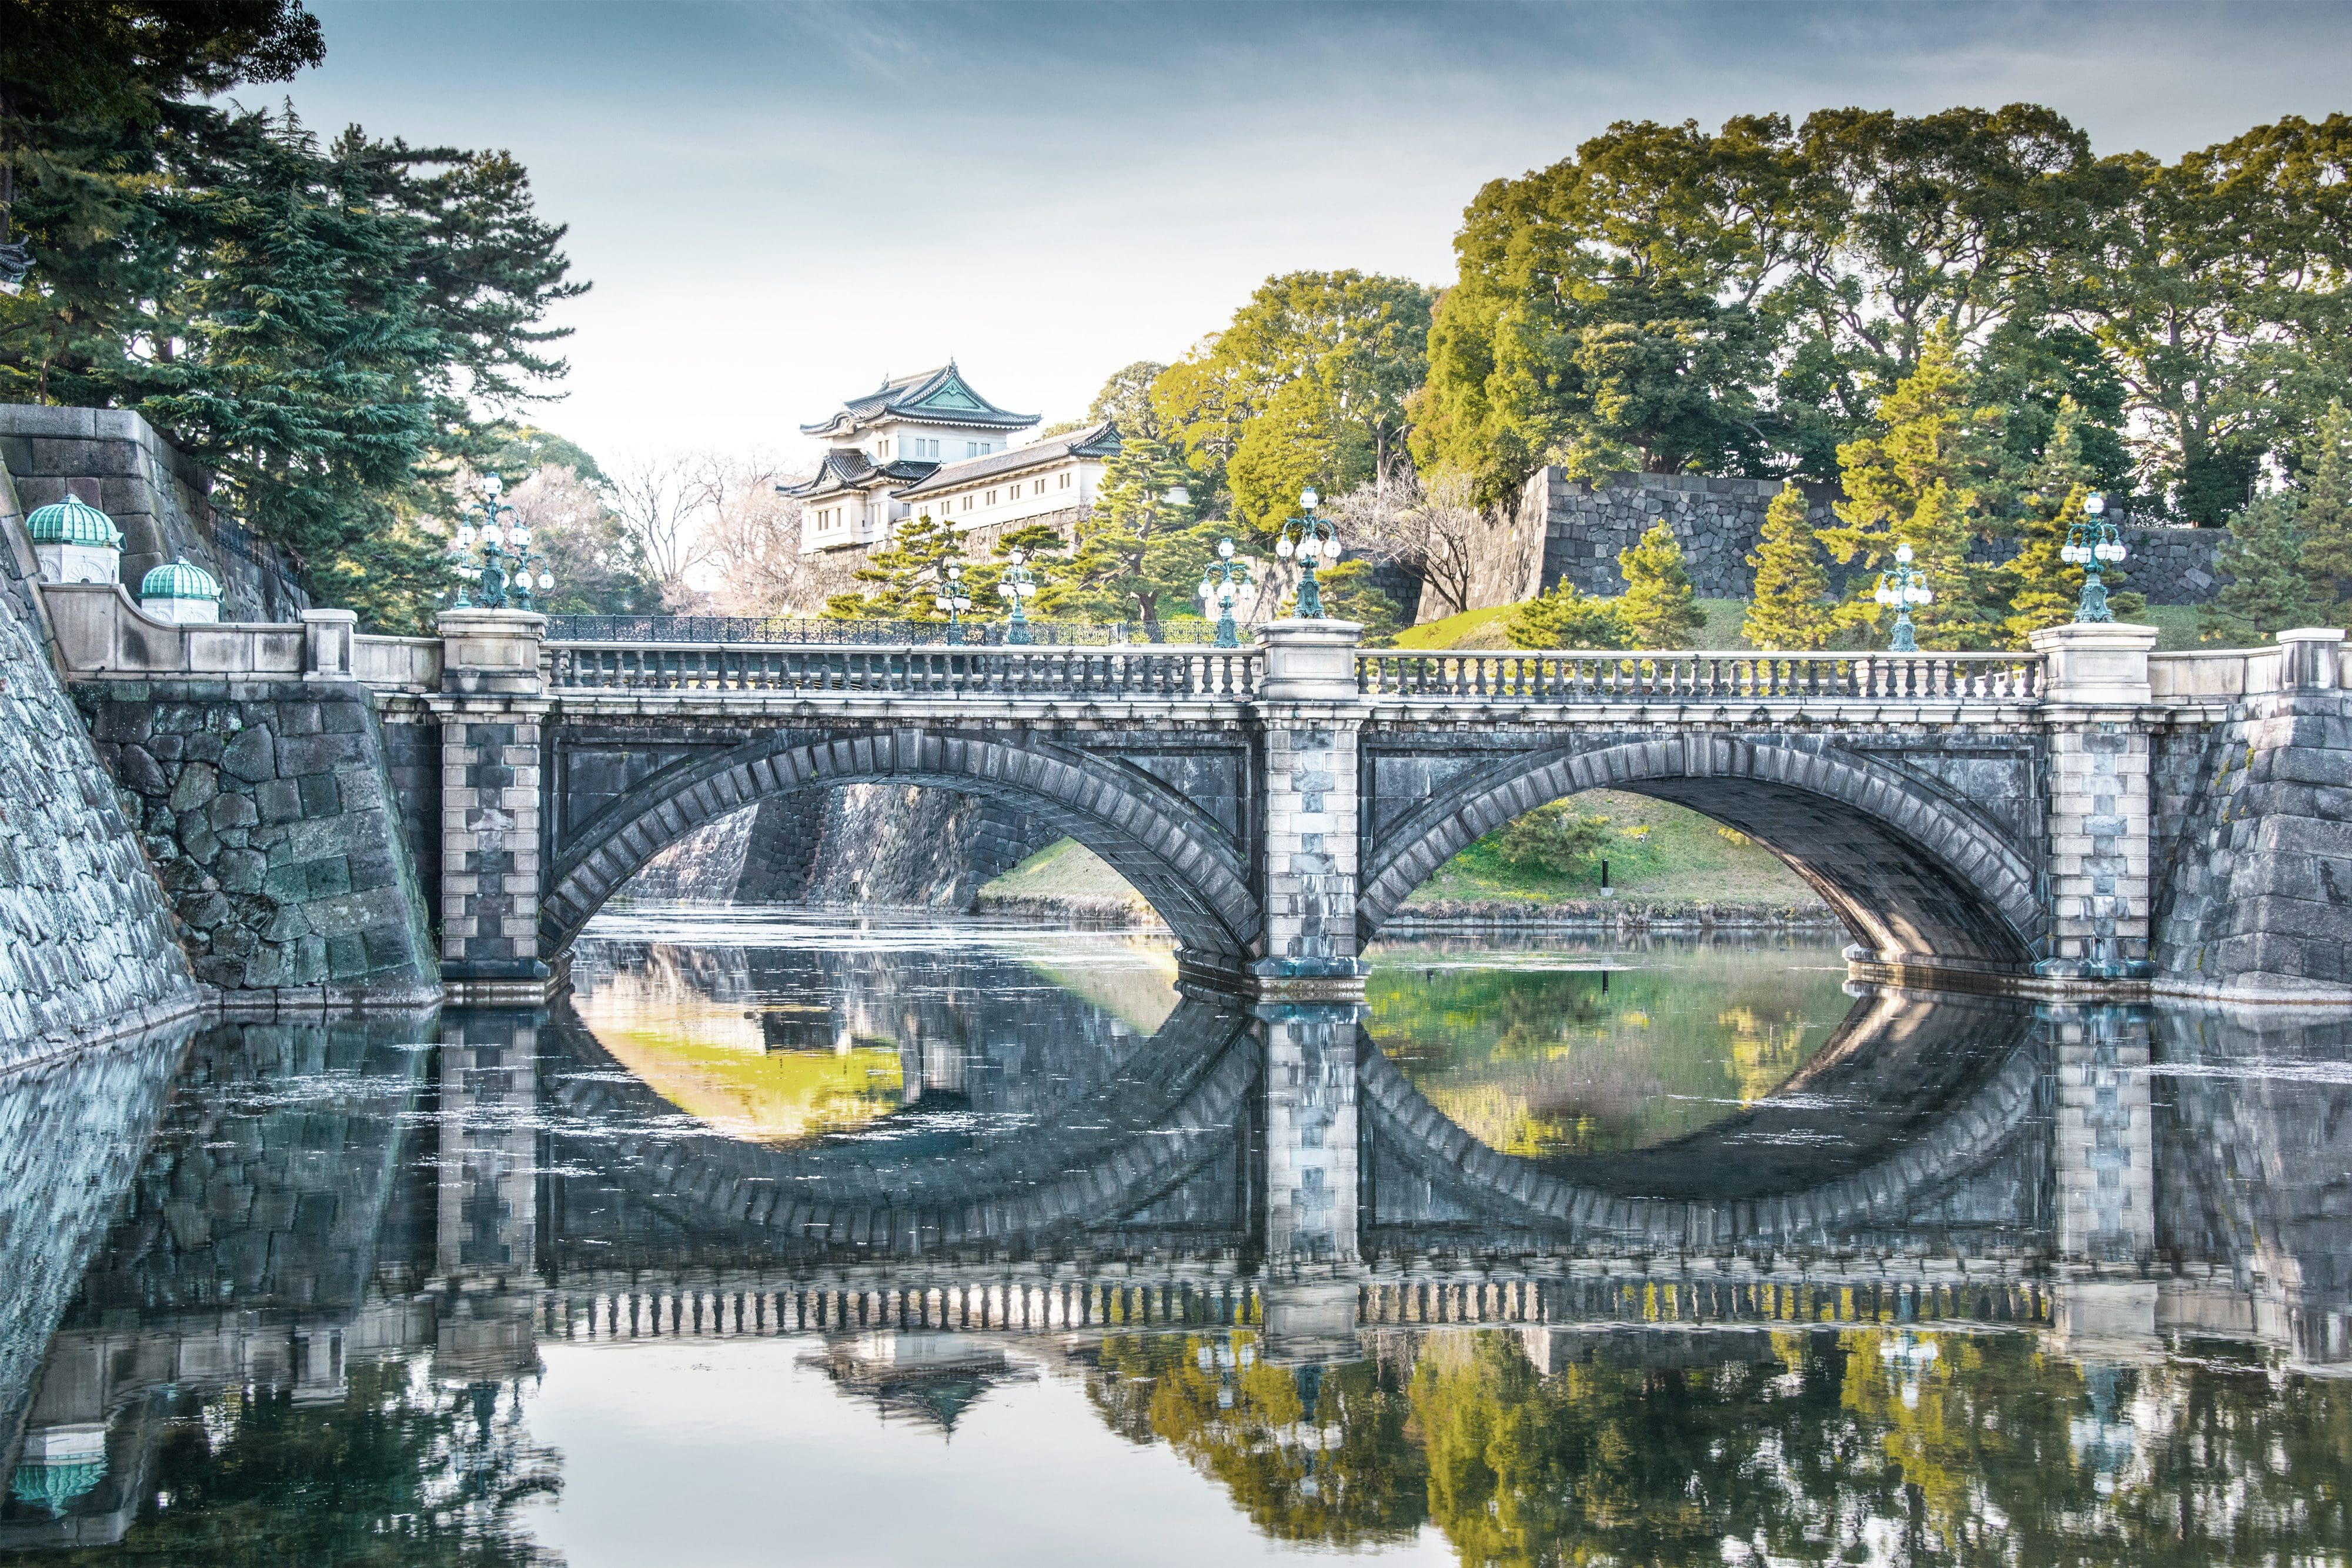 Bridge crossing the reflective water in Tokyo's Imperial Palace gardens